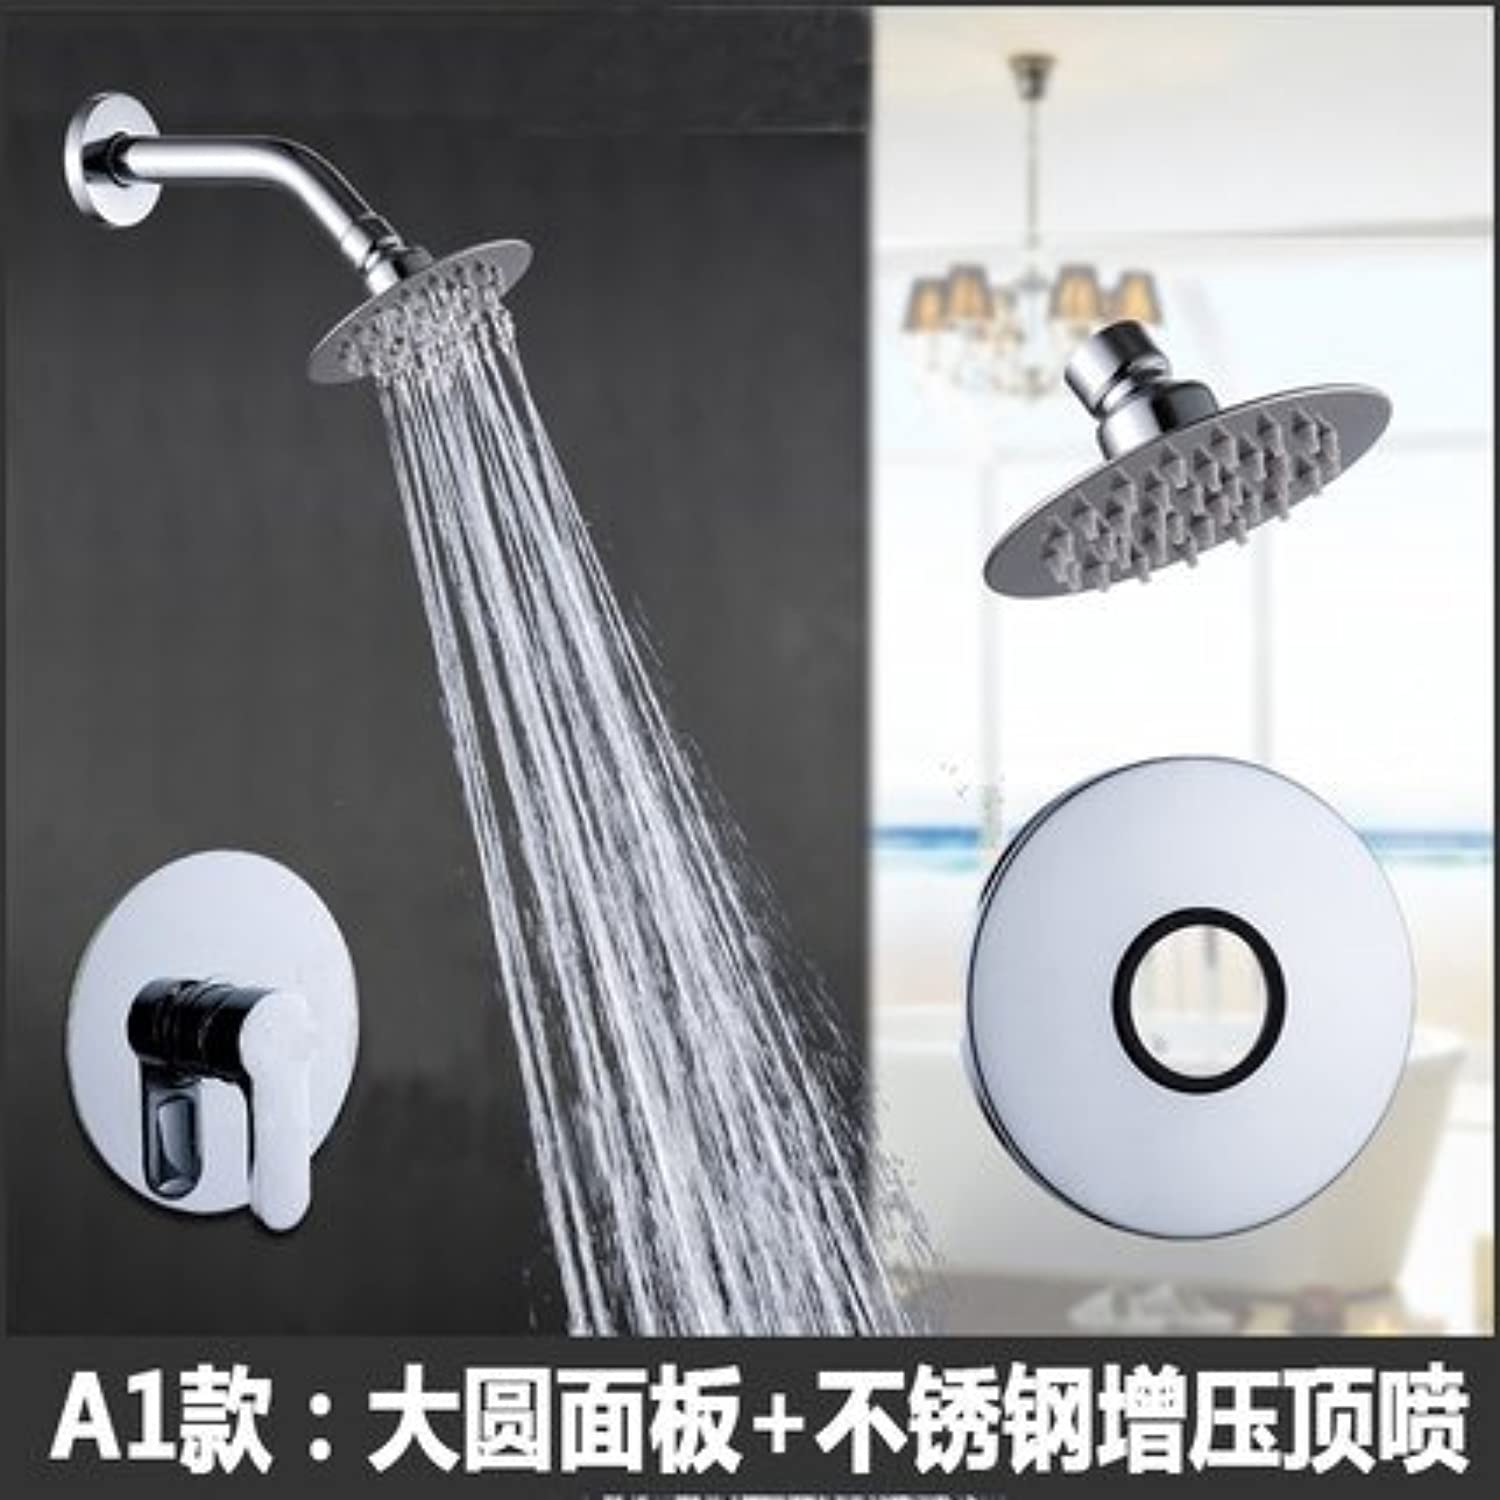 Free shipping in wall shower faucet brass bathroom shower set hot and cold bath mixer valve wall mounted rain shower sets faucet,White